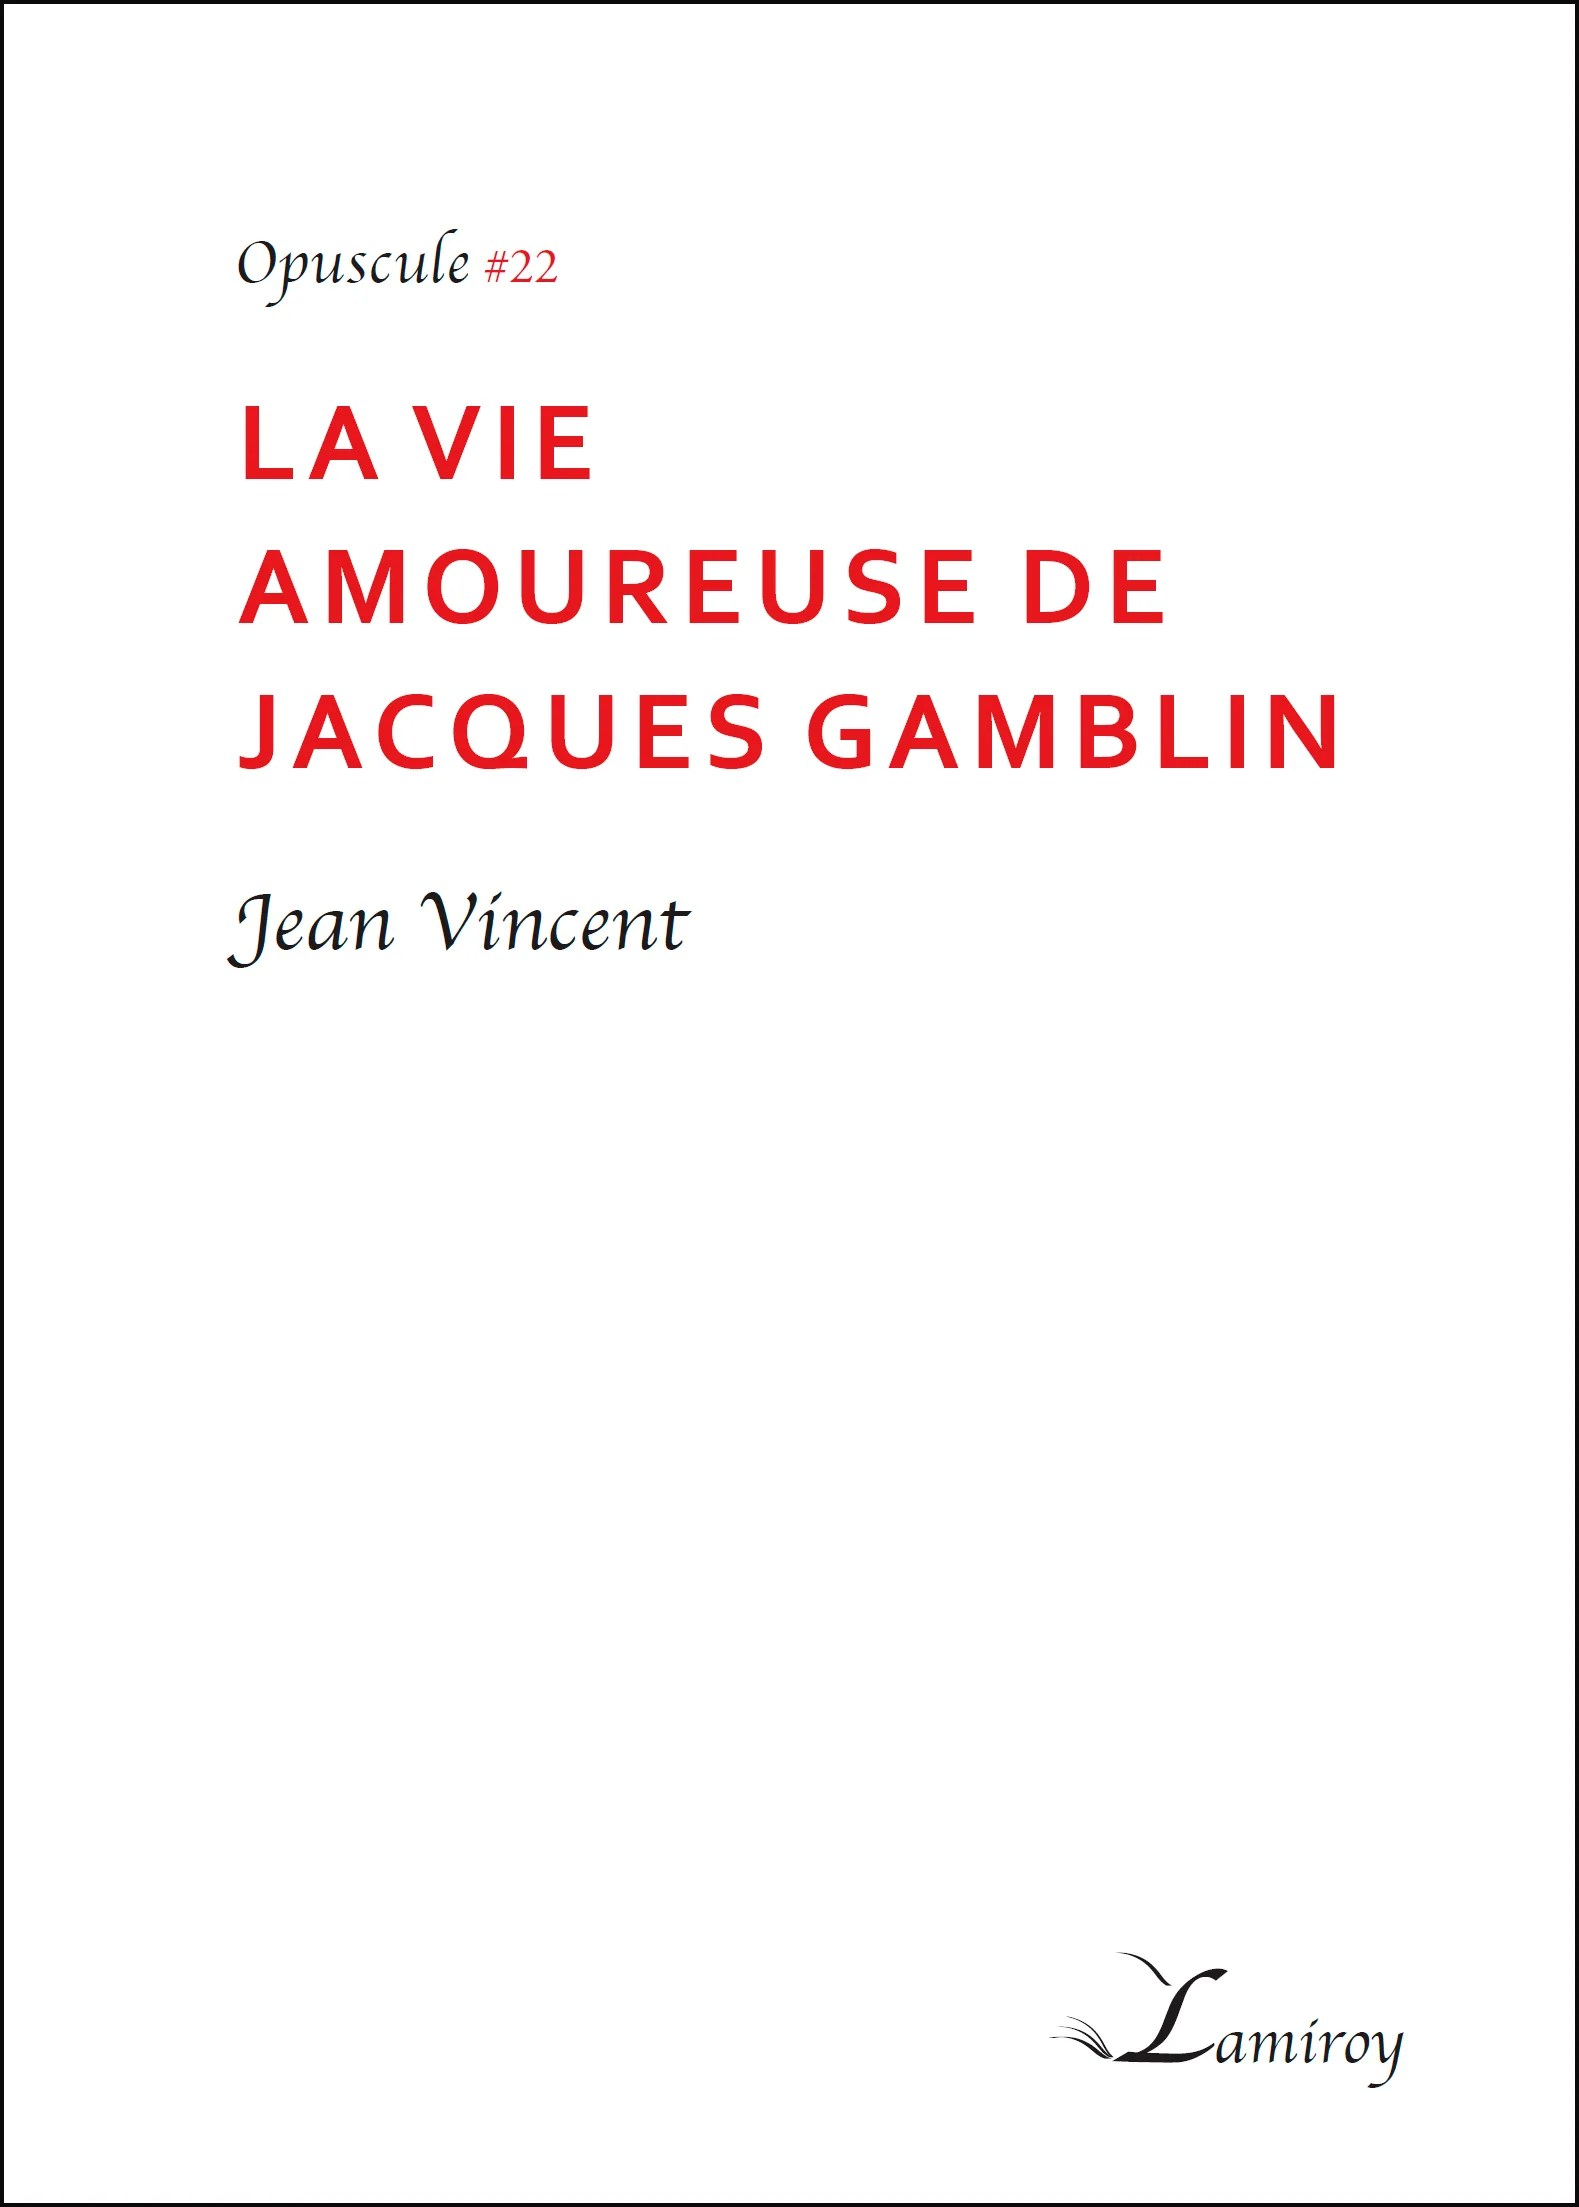 Jacques Gamblin Et Sa Fille : jacques, gamblin, fille, Amoureuse, Jacques, Gamblin, Editions, Lamiroy